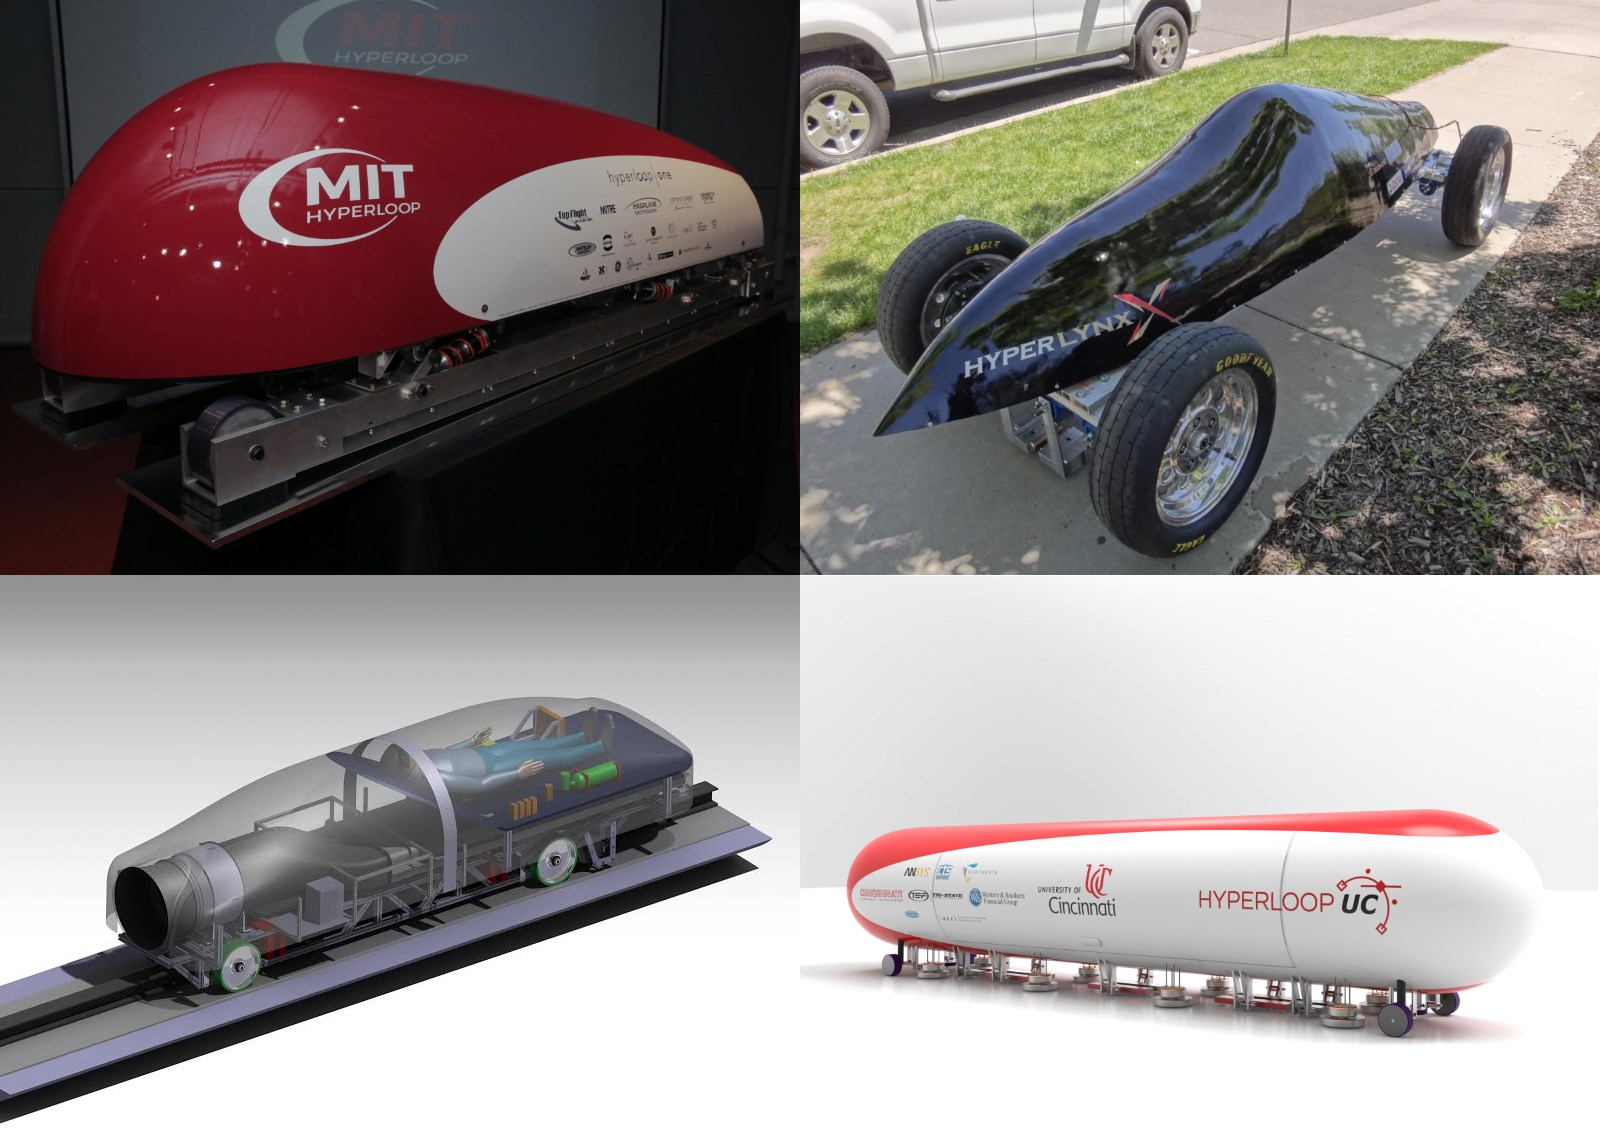 MIT's Hyperloop pod design from SpaceX's recent university competition.